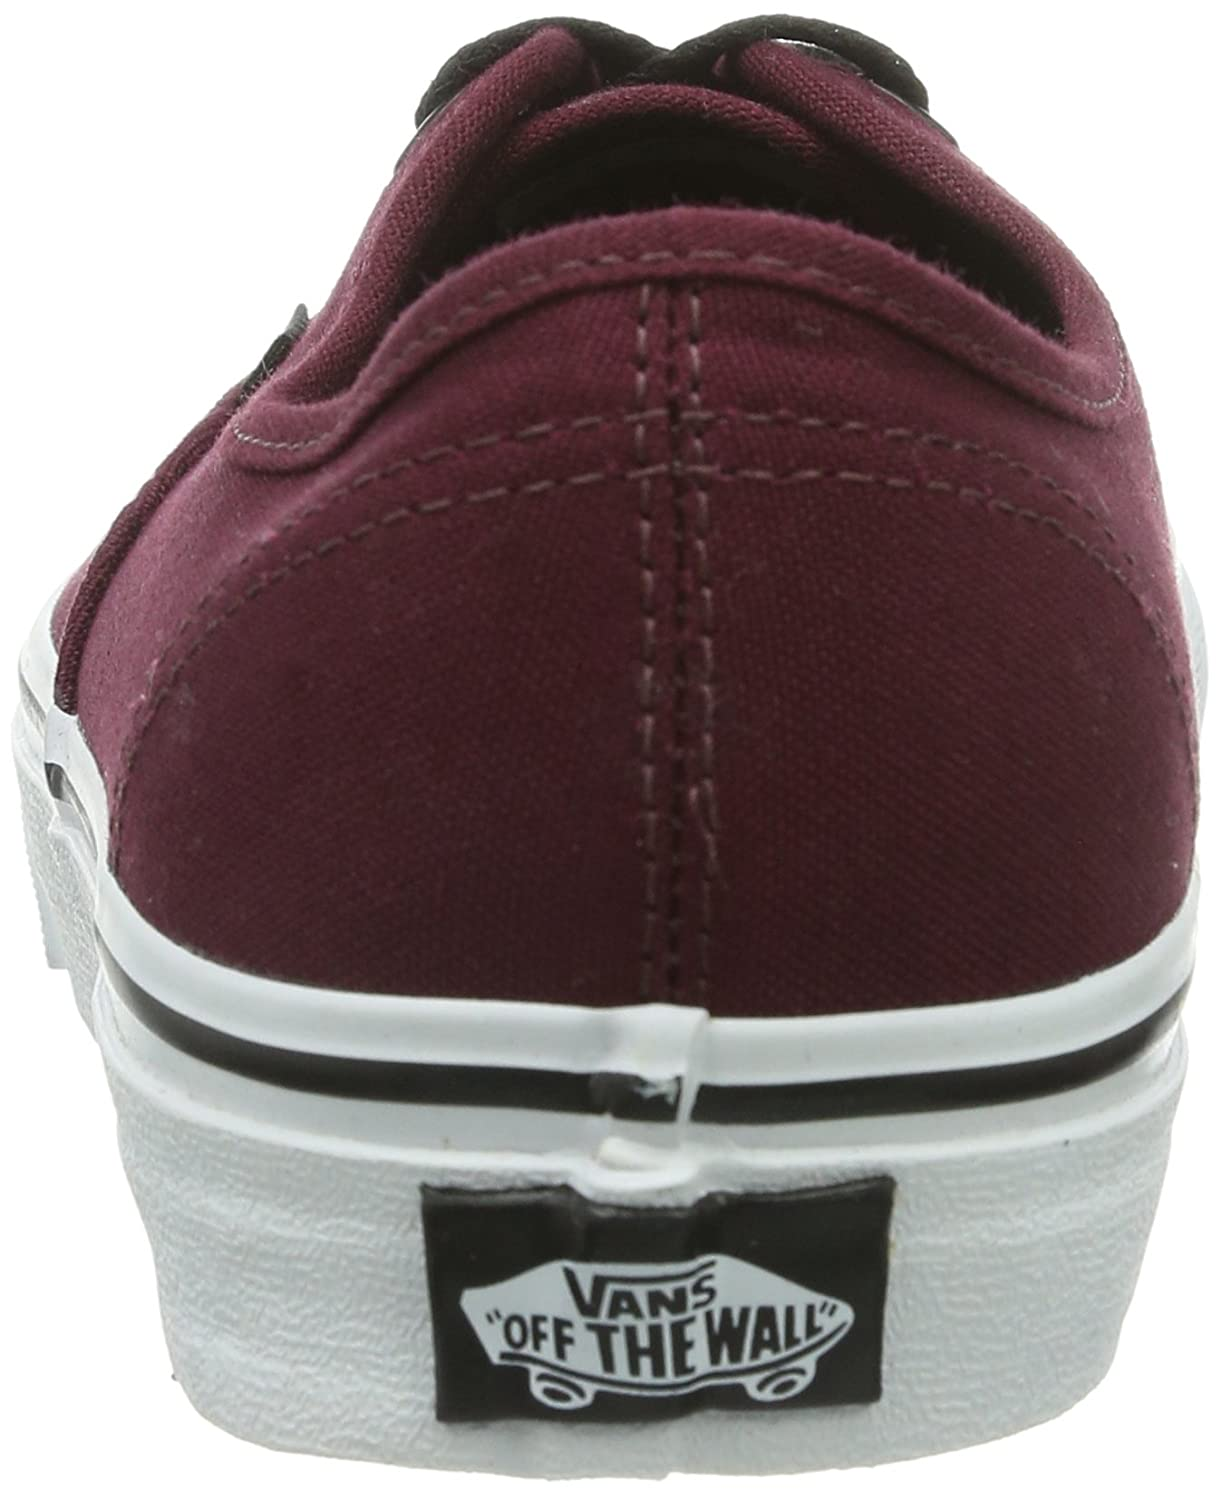 Man/Woman VansVans B006GX0G0E Skateboarding Easy to use Quality First First First Lightweight shoes 824443